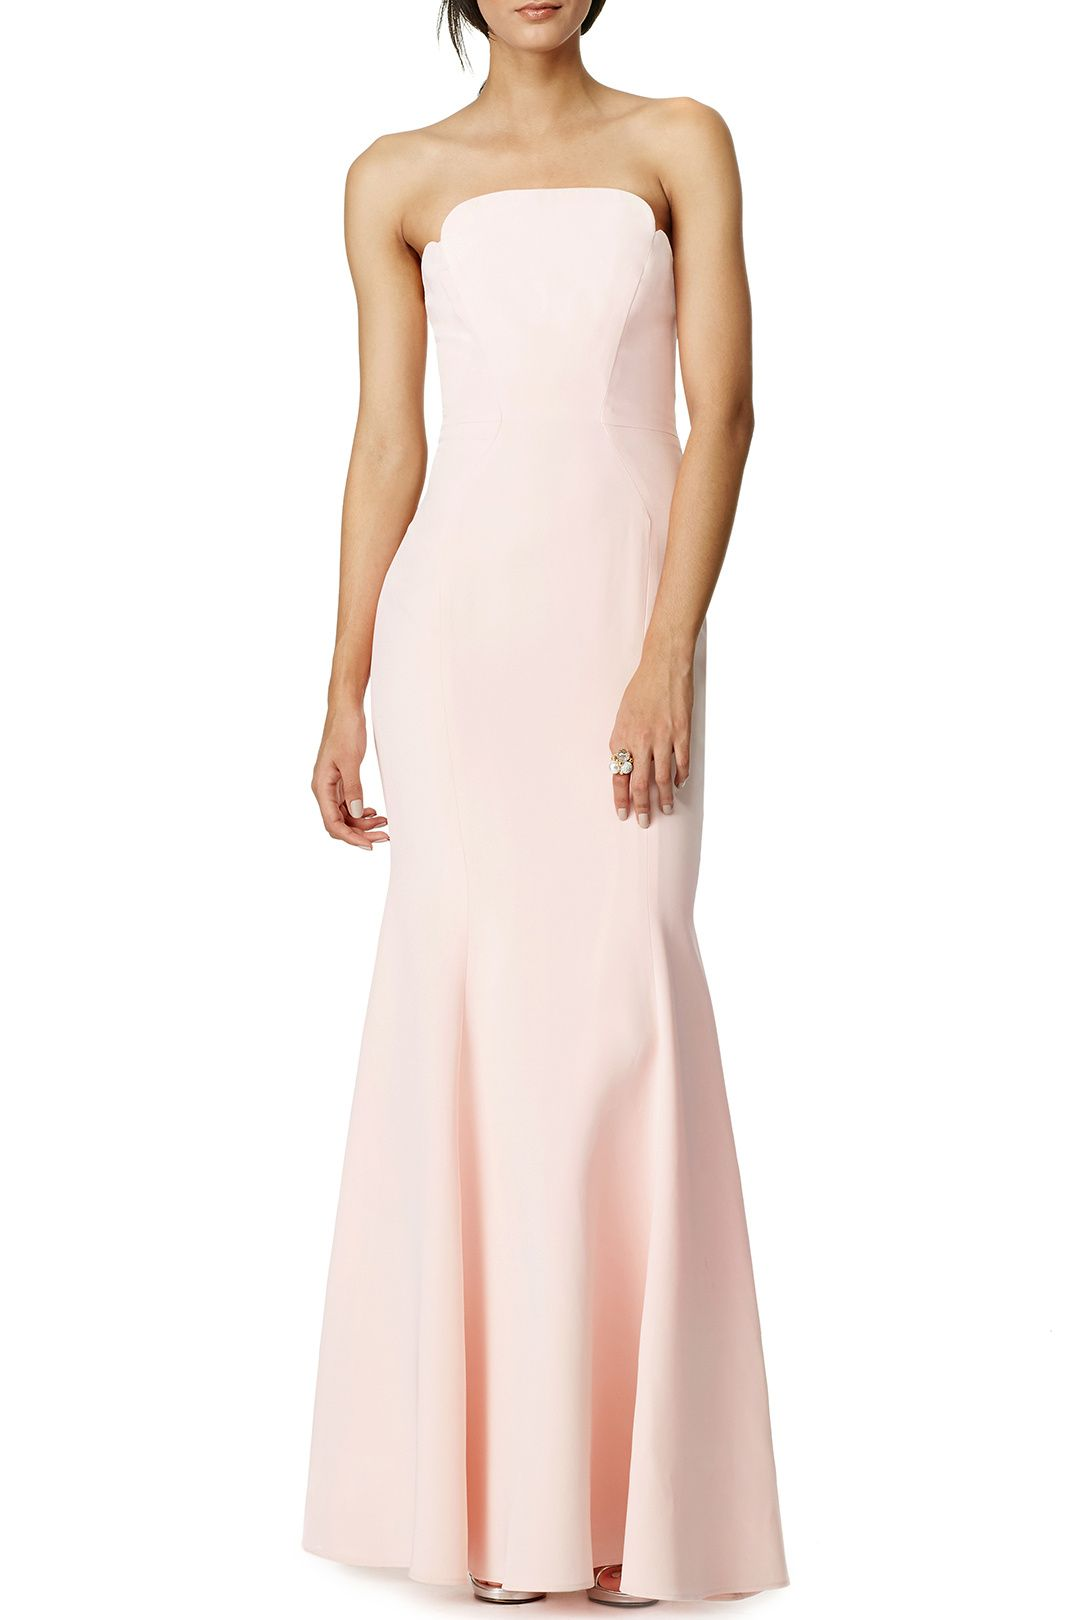 15ea840e5a80 Blush Academy Gown by Jill Jill Stuart ($388 retail or rent for $70) | Rent  The Runway